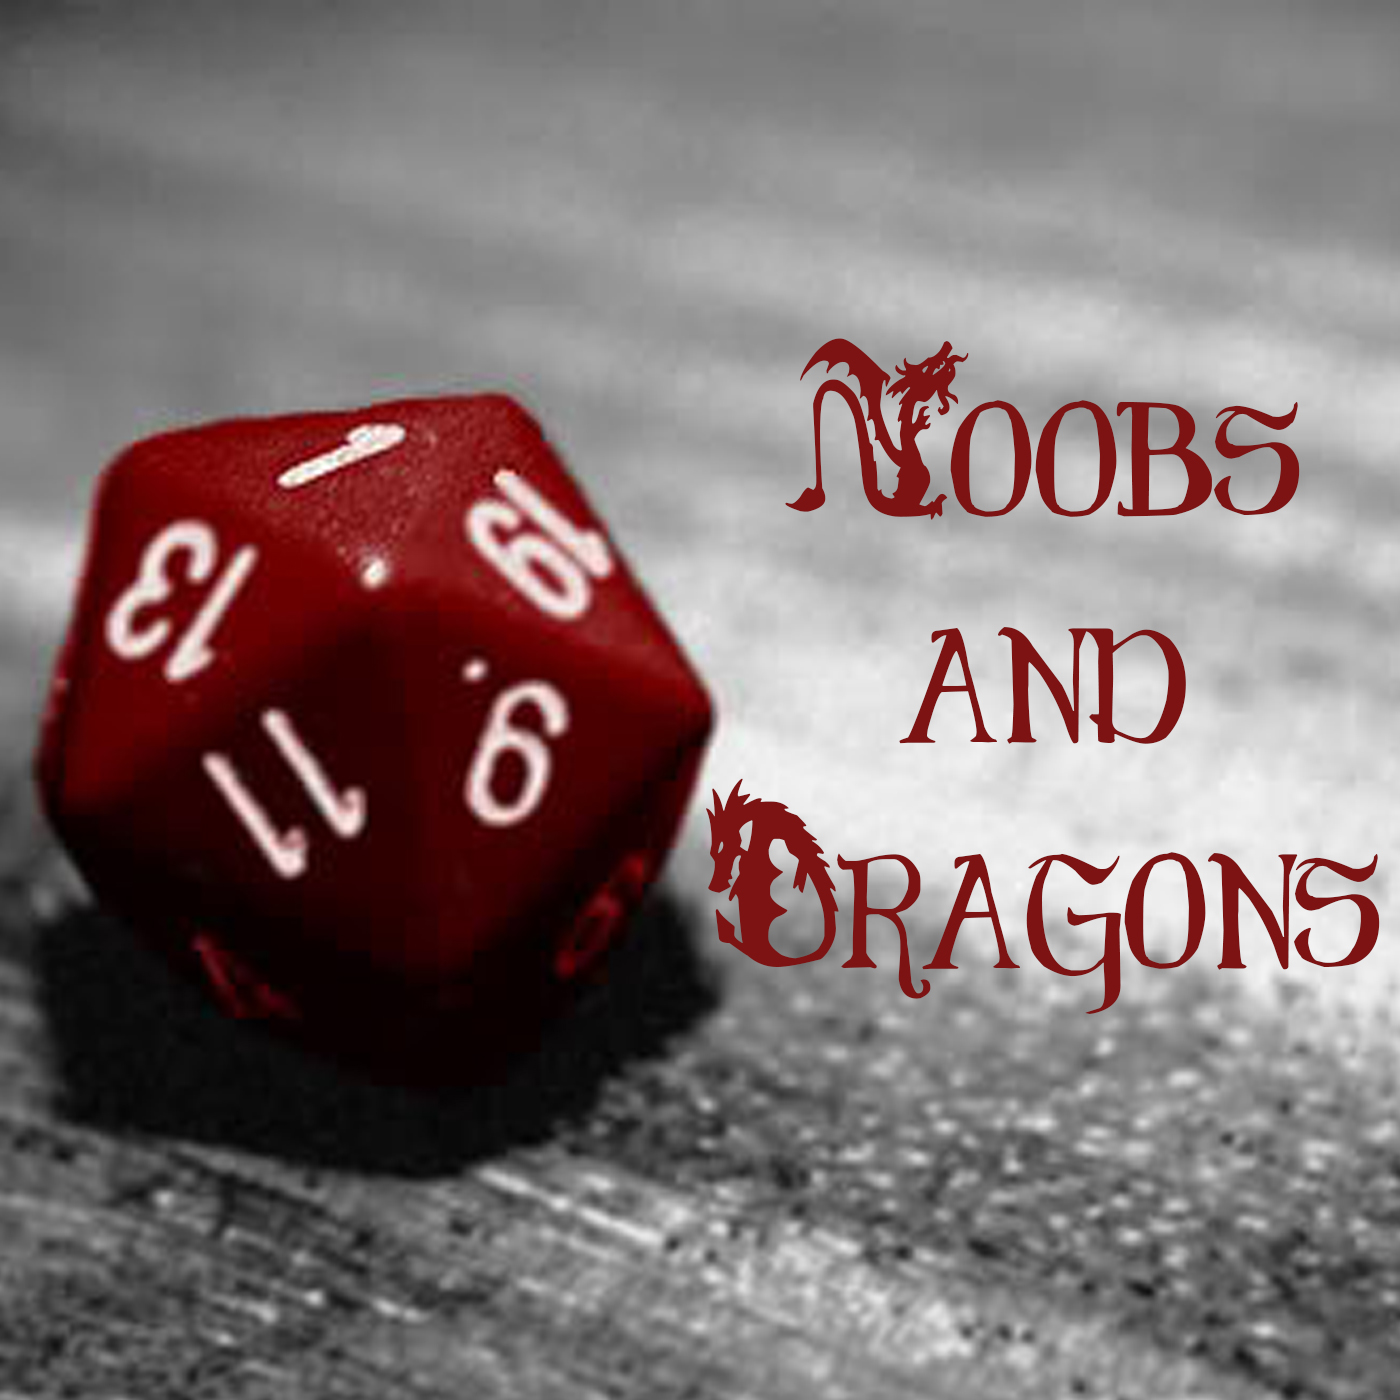 Noobs and Dragons logo temp.jpg